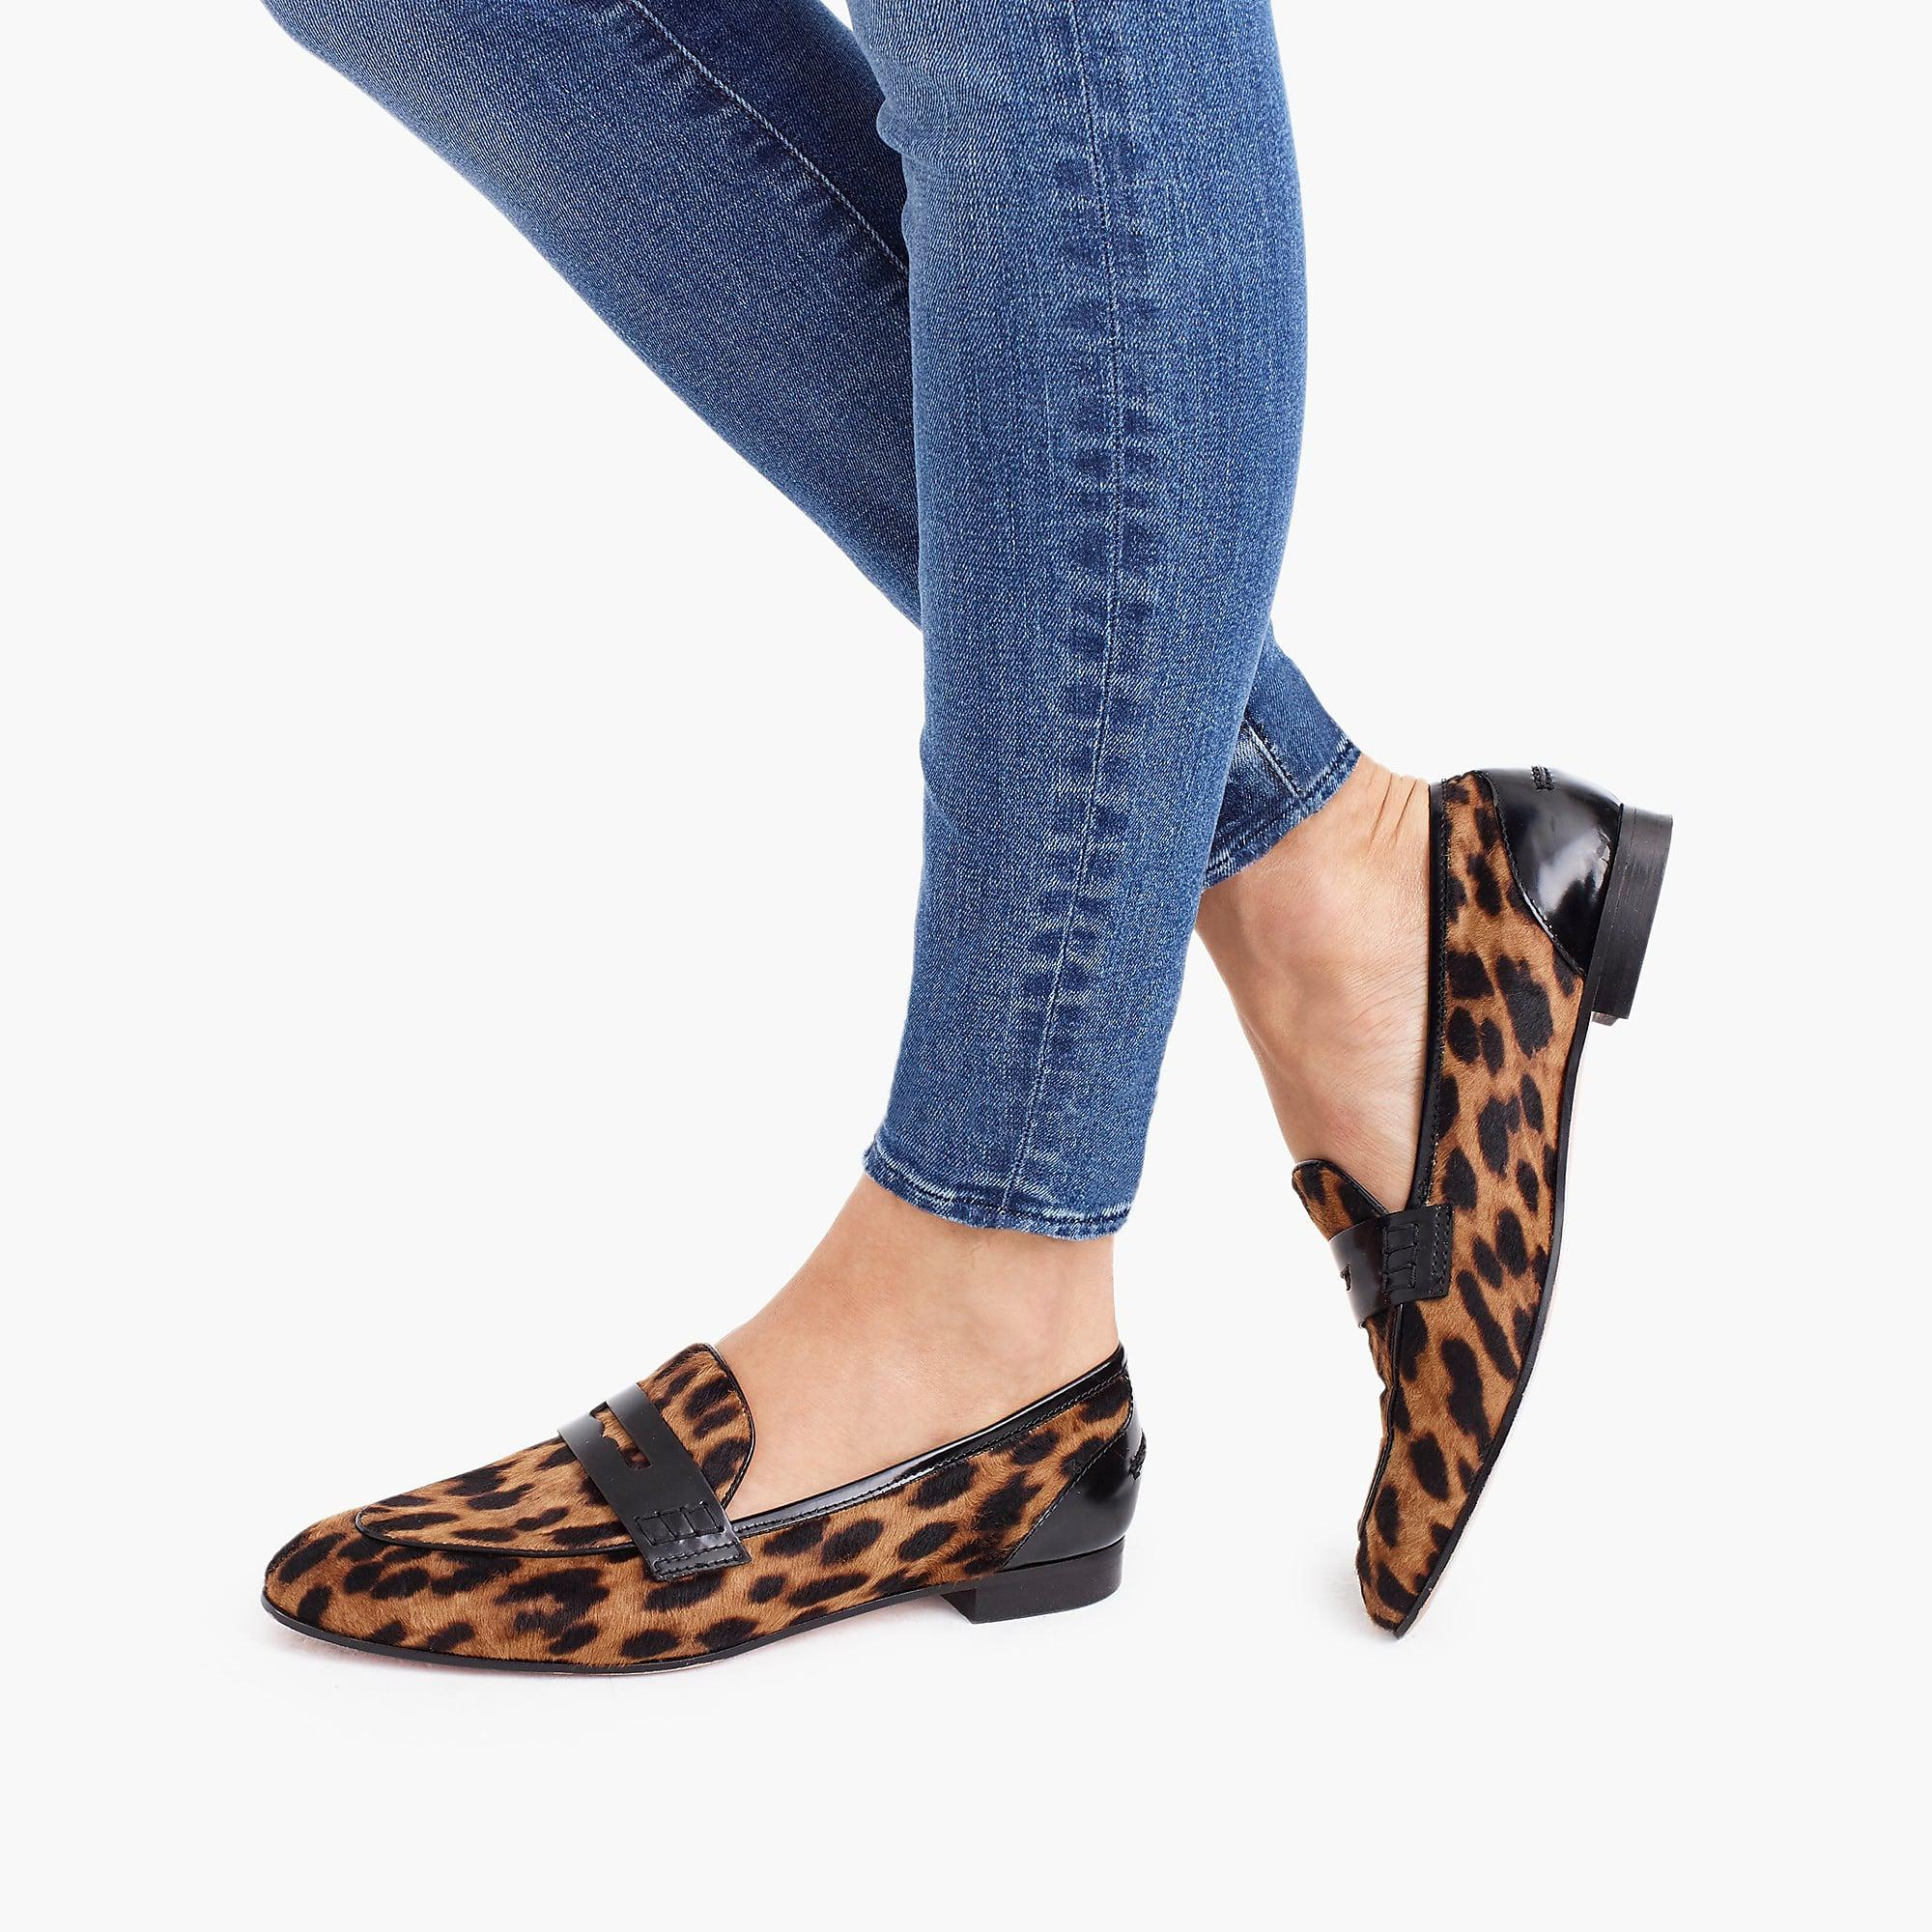 2d0aaf6feb7 ... Academy Penny Loafers In Leopard Calf Hair - Lyst. View fullscreen